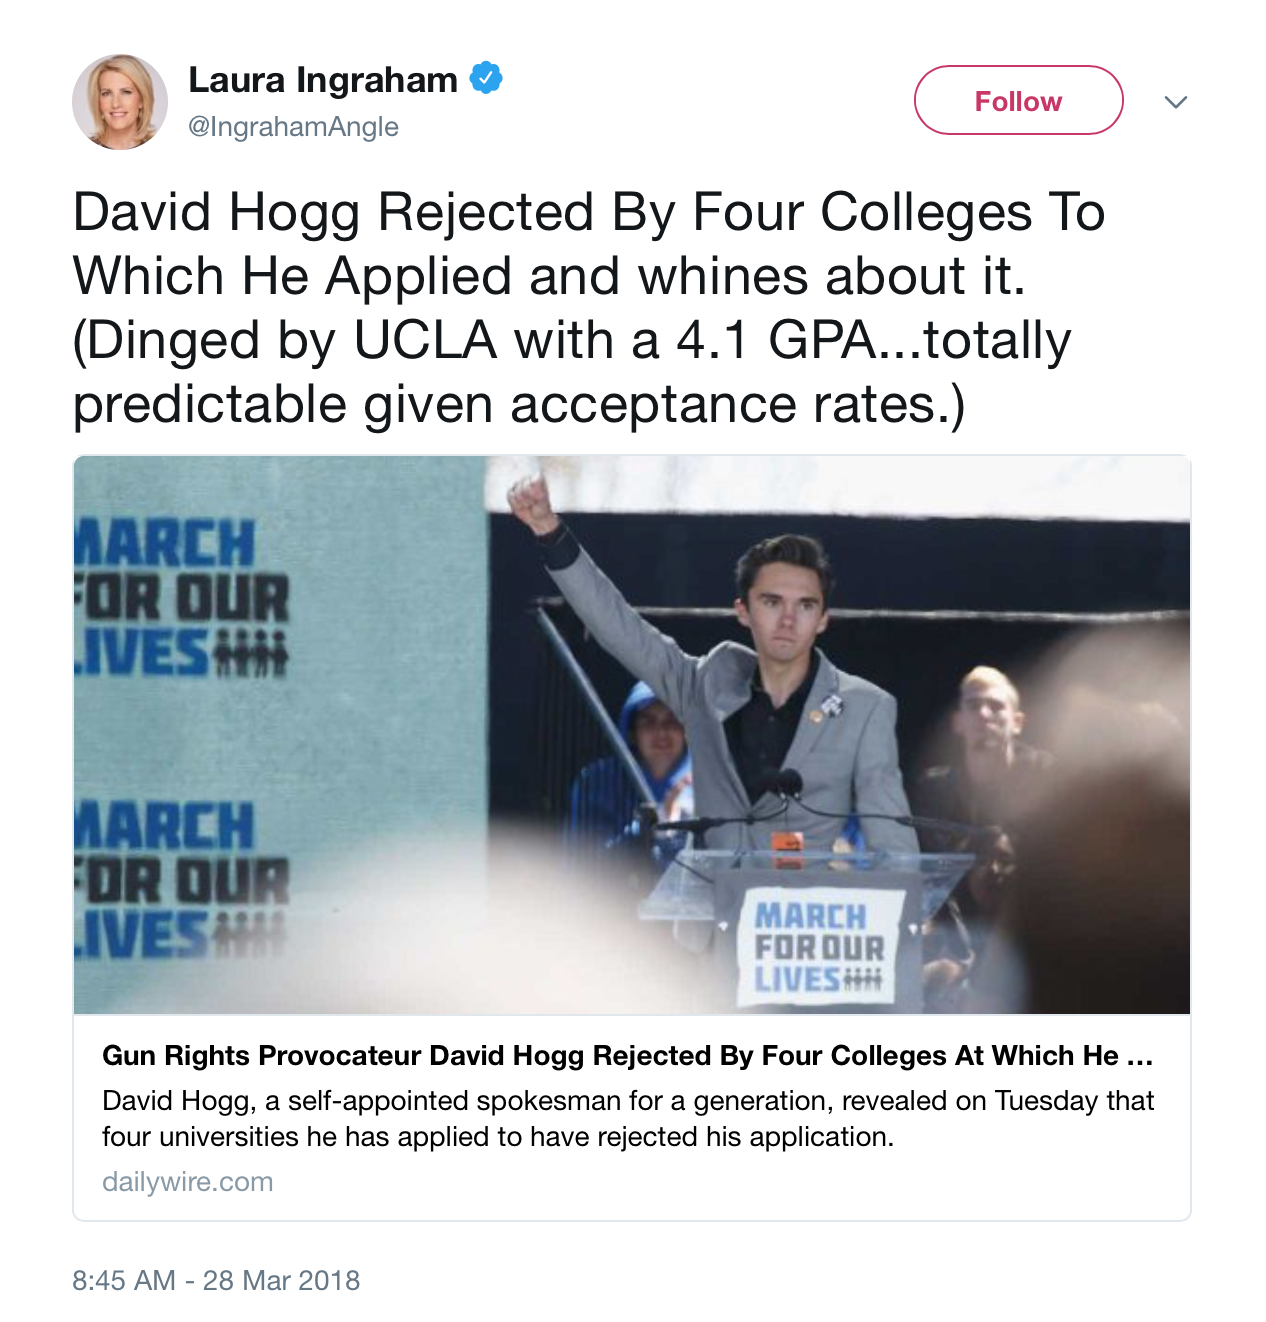 Wayfair pulling ads from Laura Ingraham's show